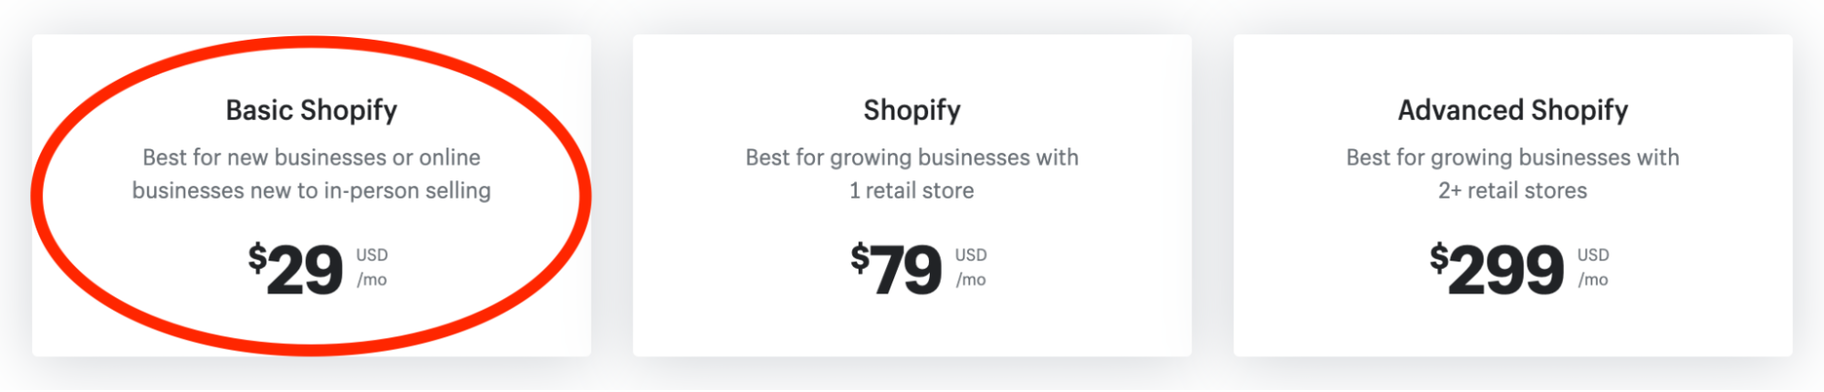 Basic Shopify Pricing